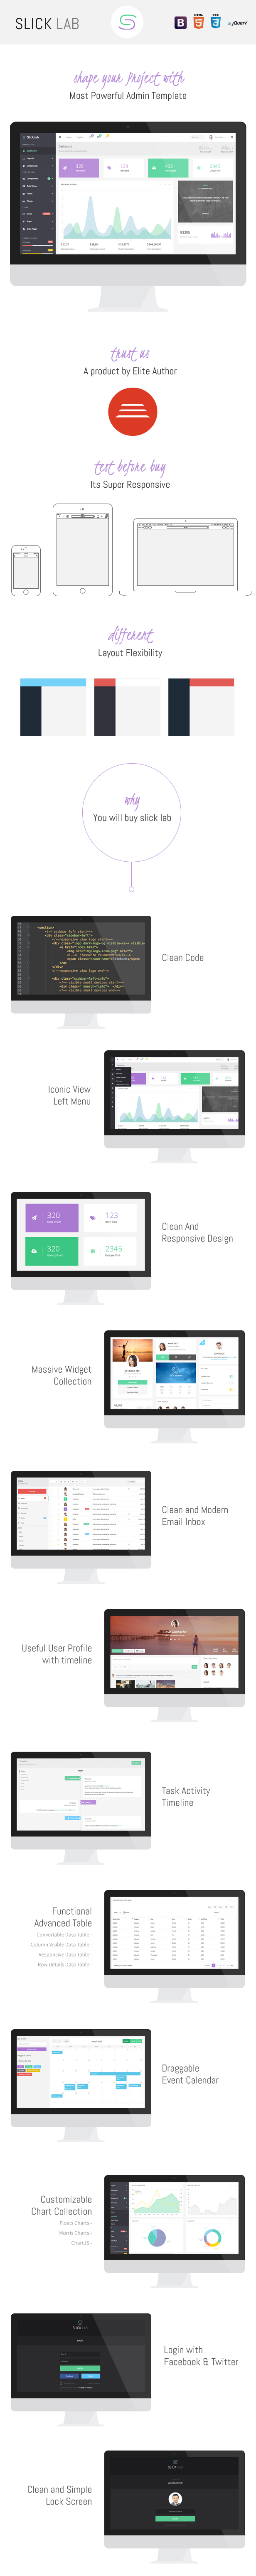 SlickLab - Responsive Admin Dashboard Template